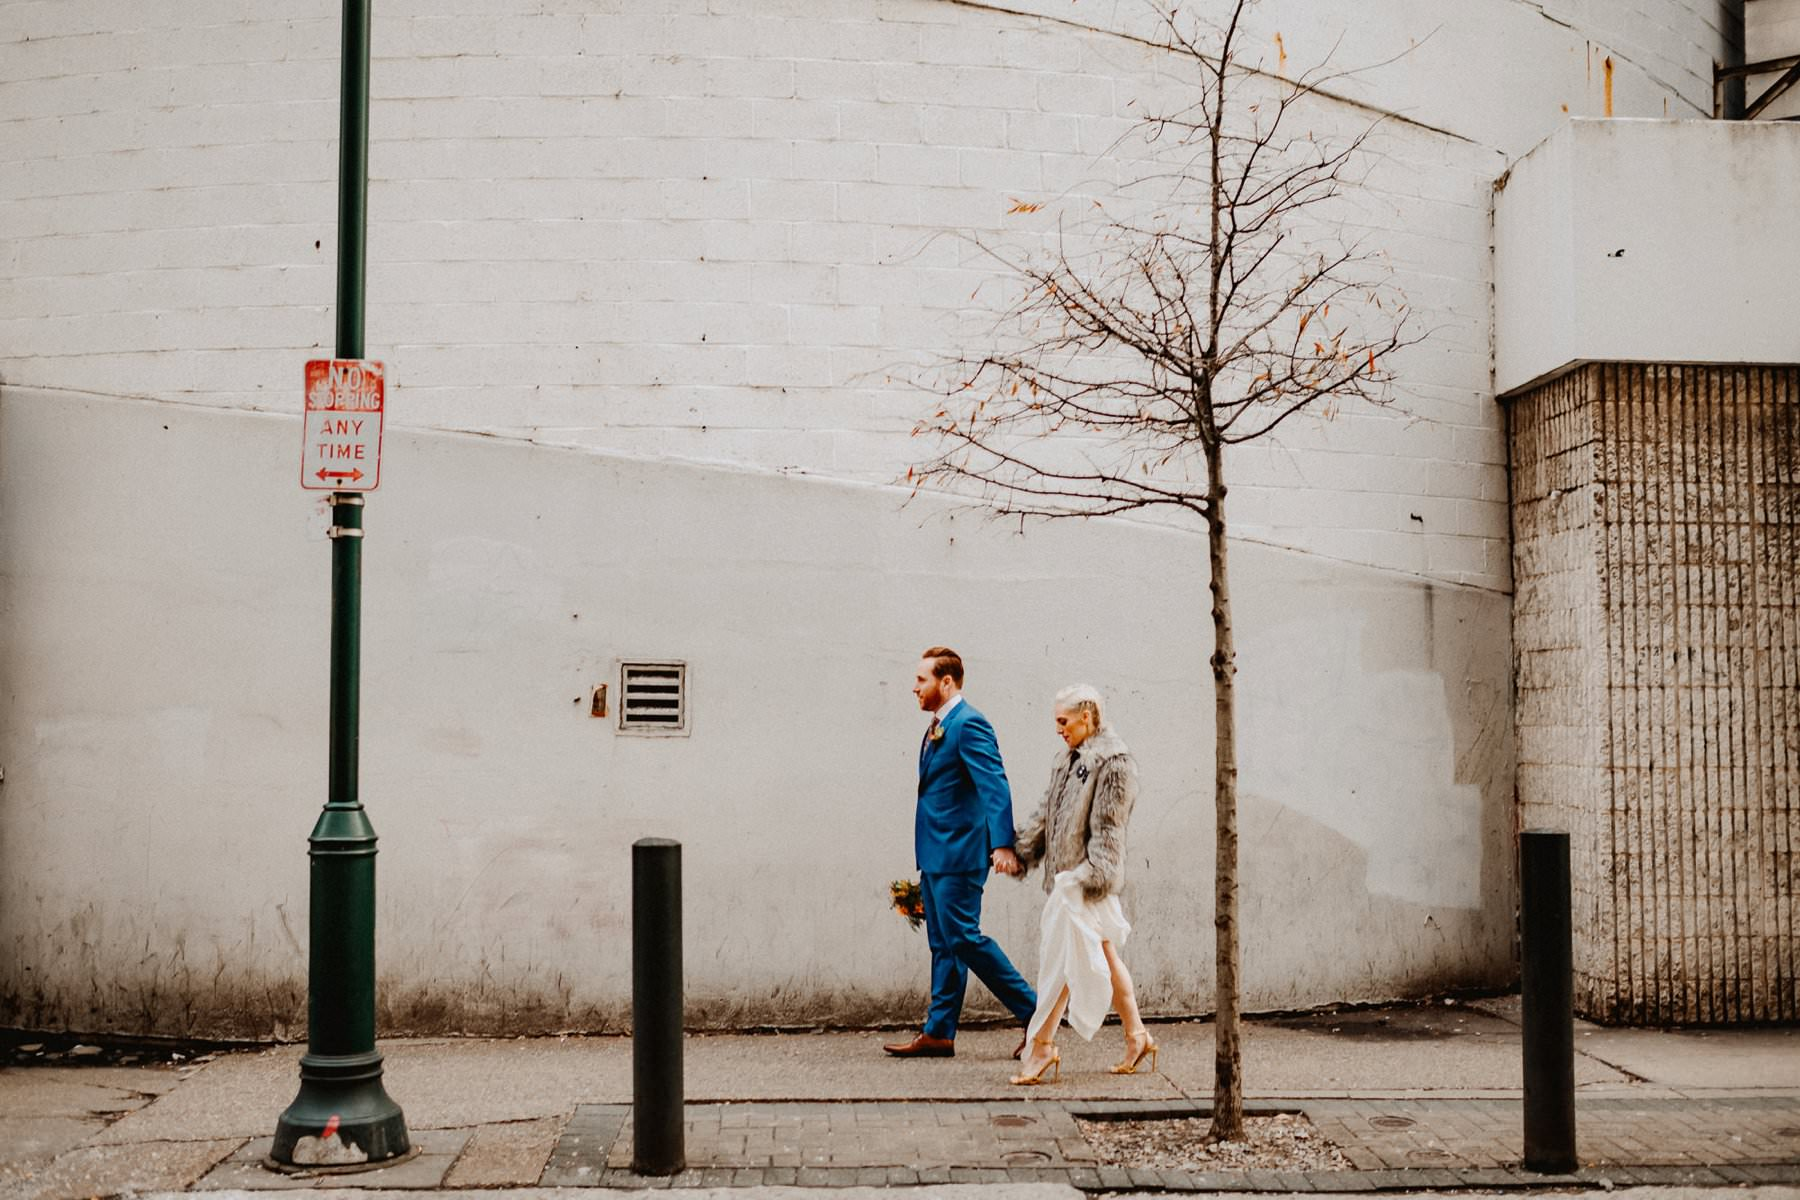 mission_taqueria_philly_wedding-35.jpg